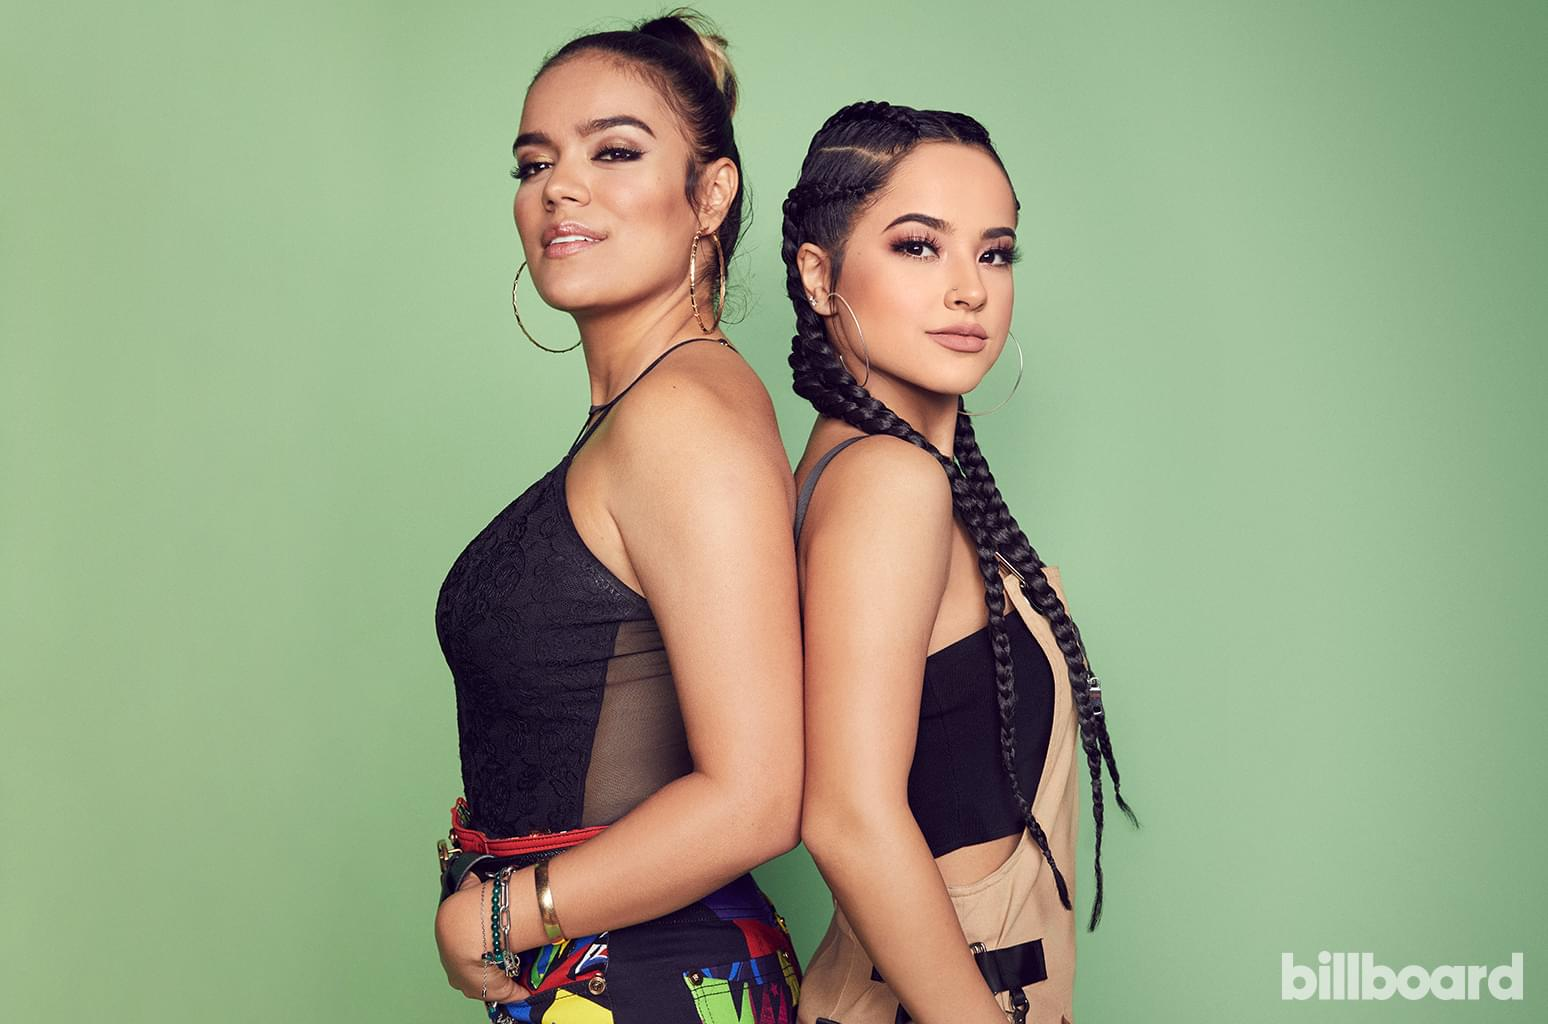 Karol G & Becky G Among Spotify's Most-Streamed Female Artists in the World